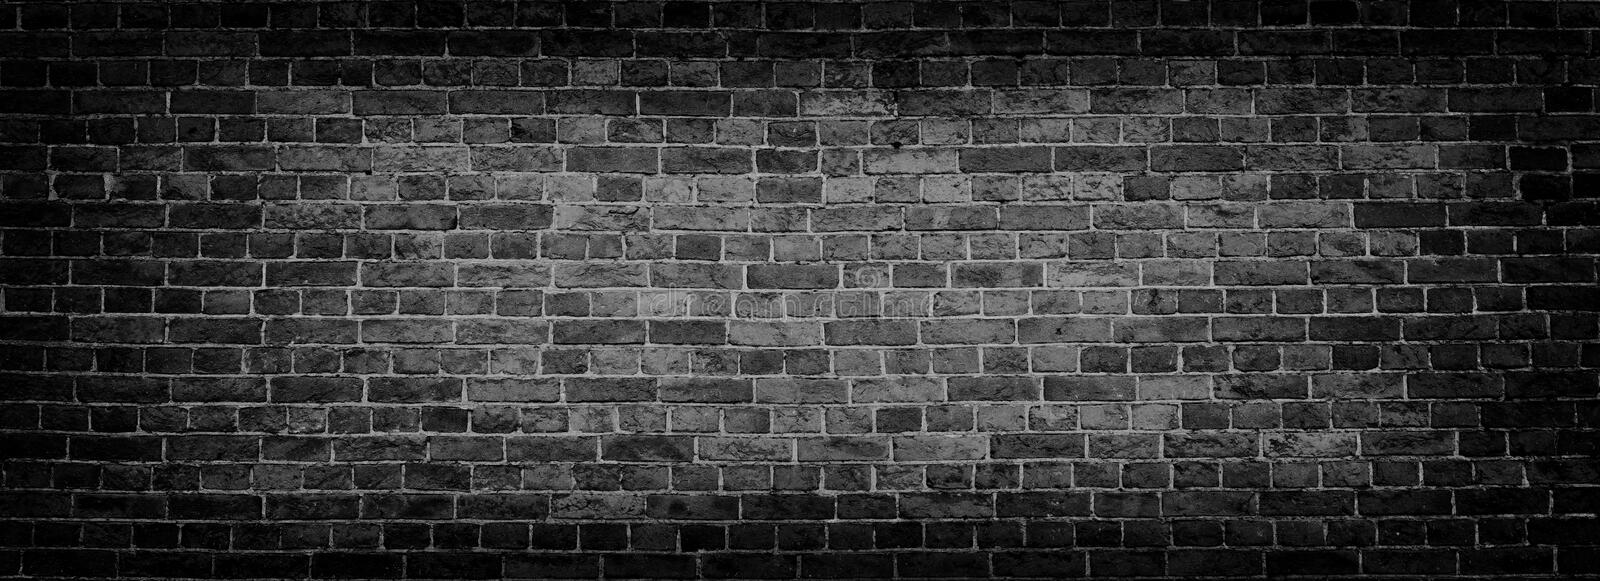 Black old brick wall panoramic background in high resolution stock download black old brick wall panoramic background in high resolution stock photo image 106597000 voltagebd Choice Image